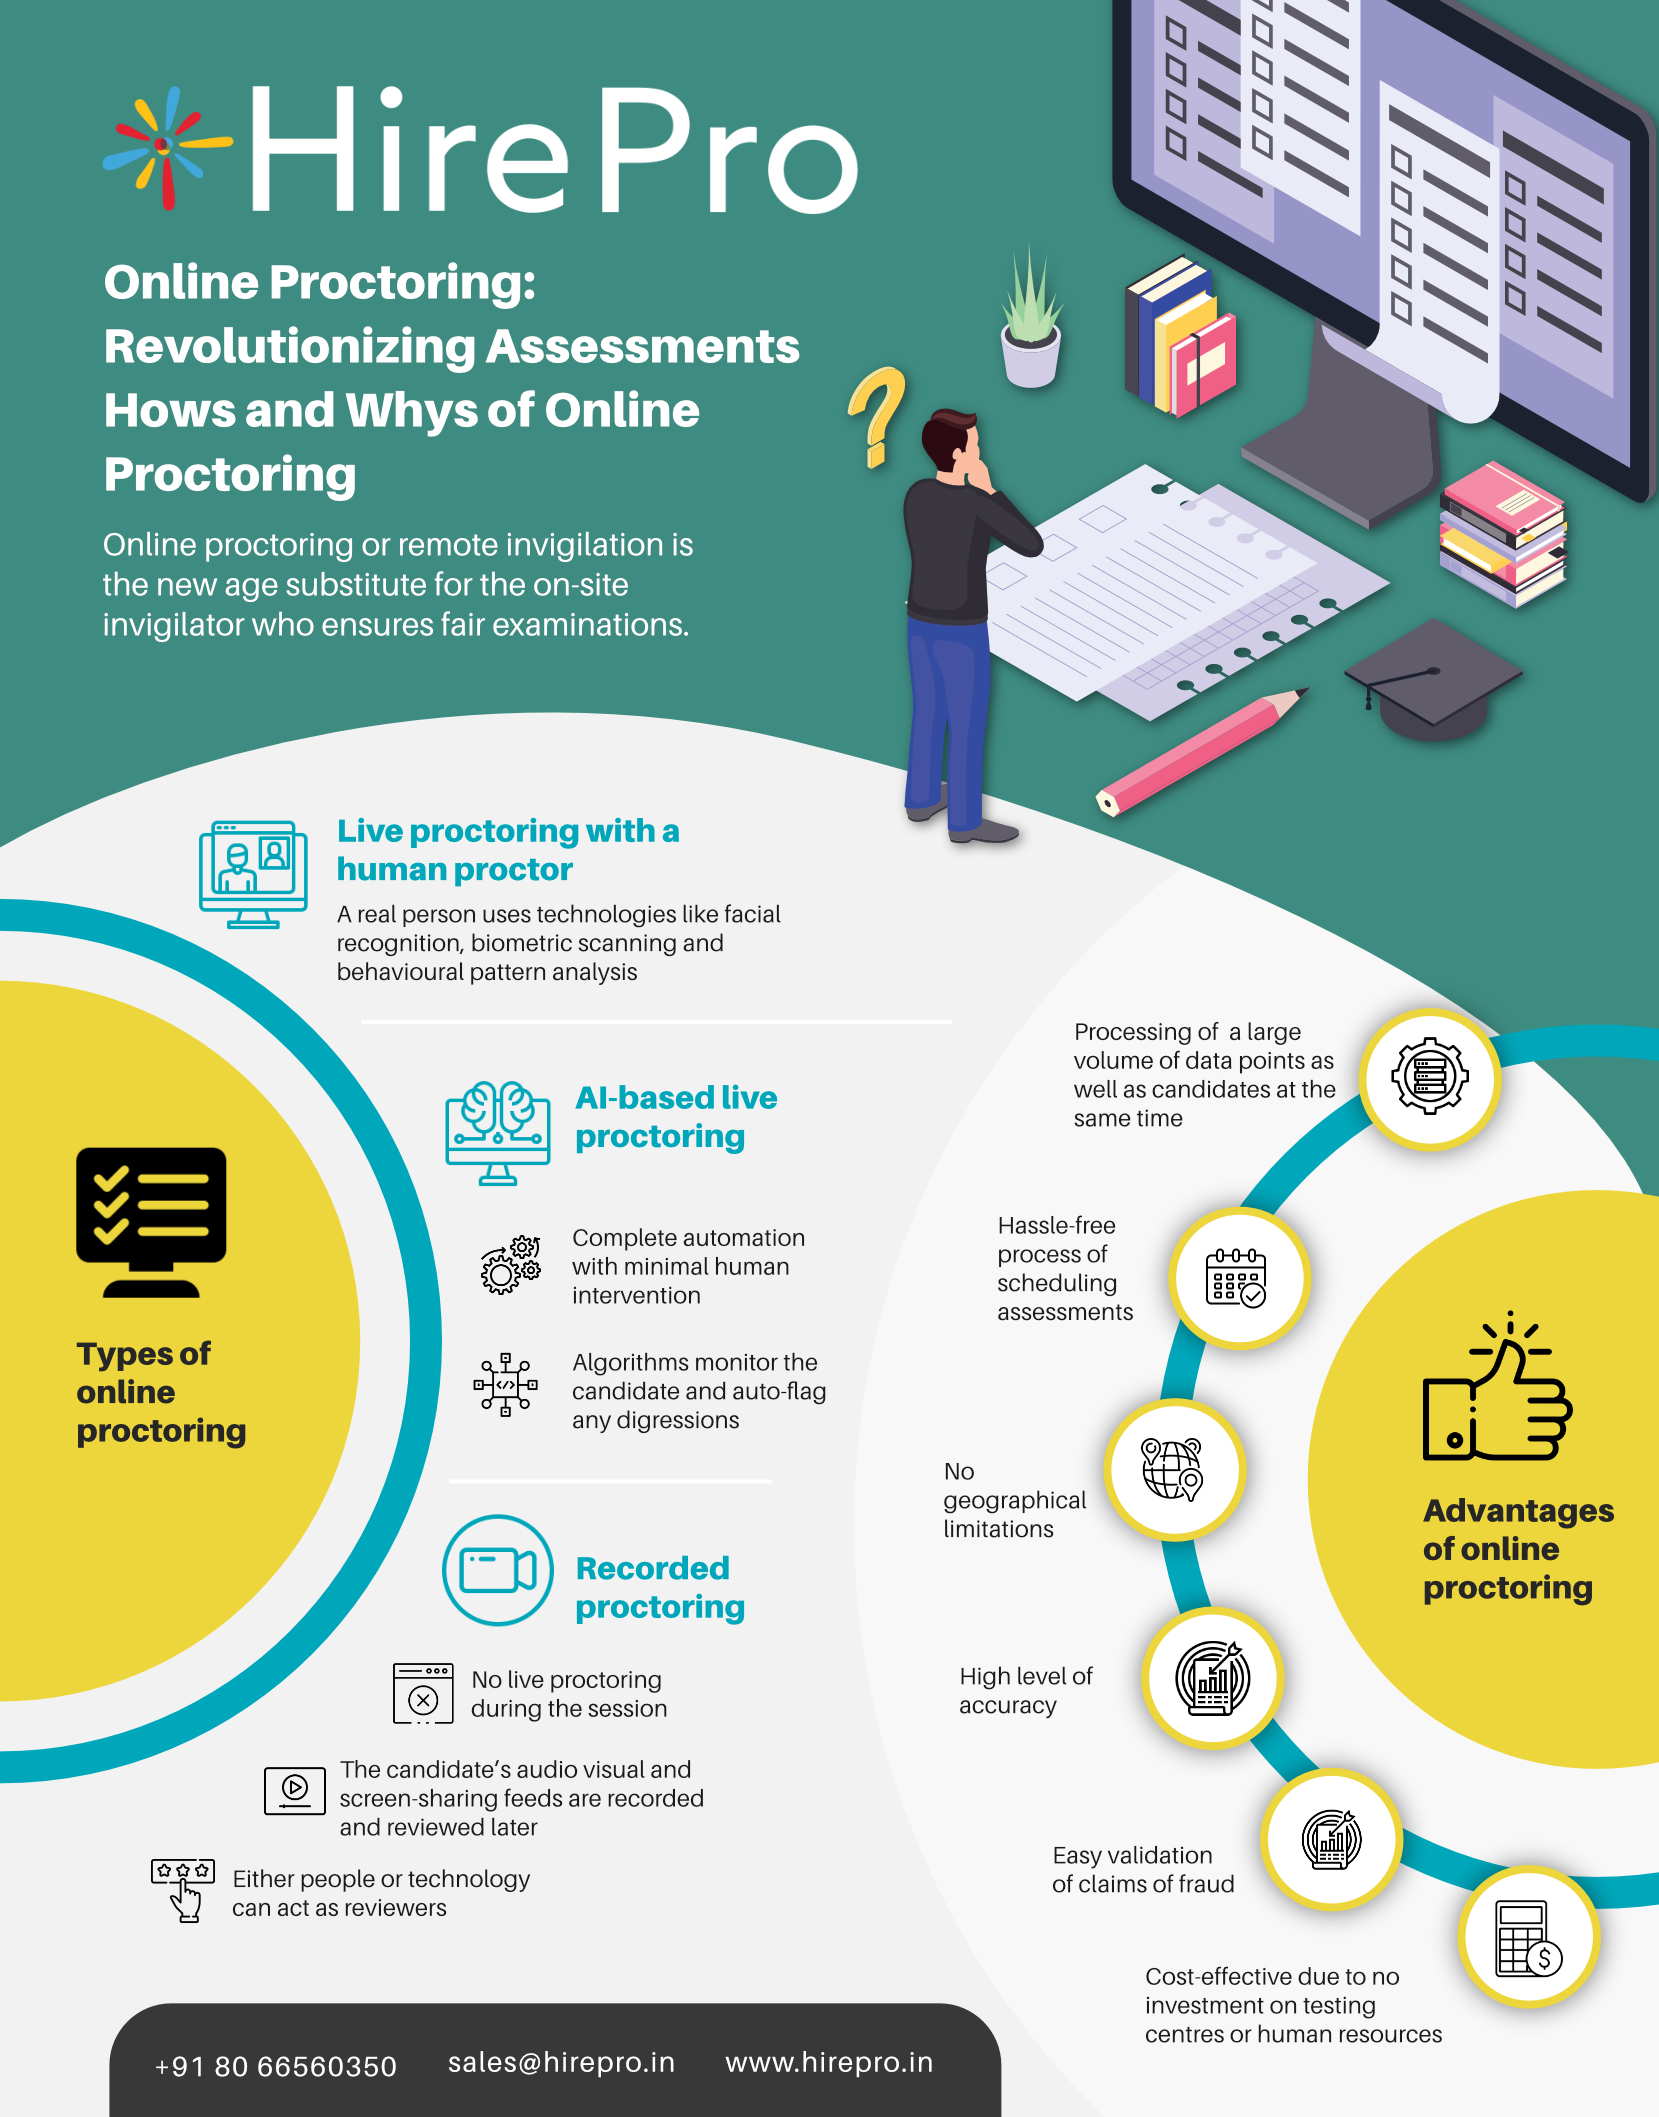 Online Proctoring: Revolutionizing Assessments Hows and Whys of Online Proctoring